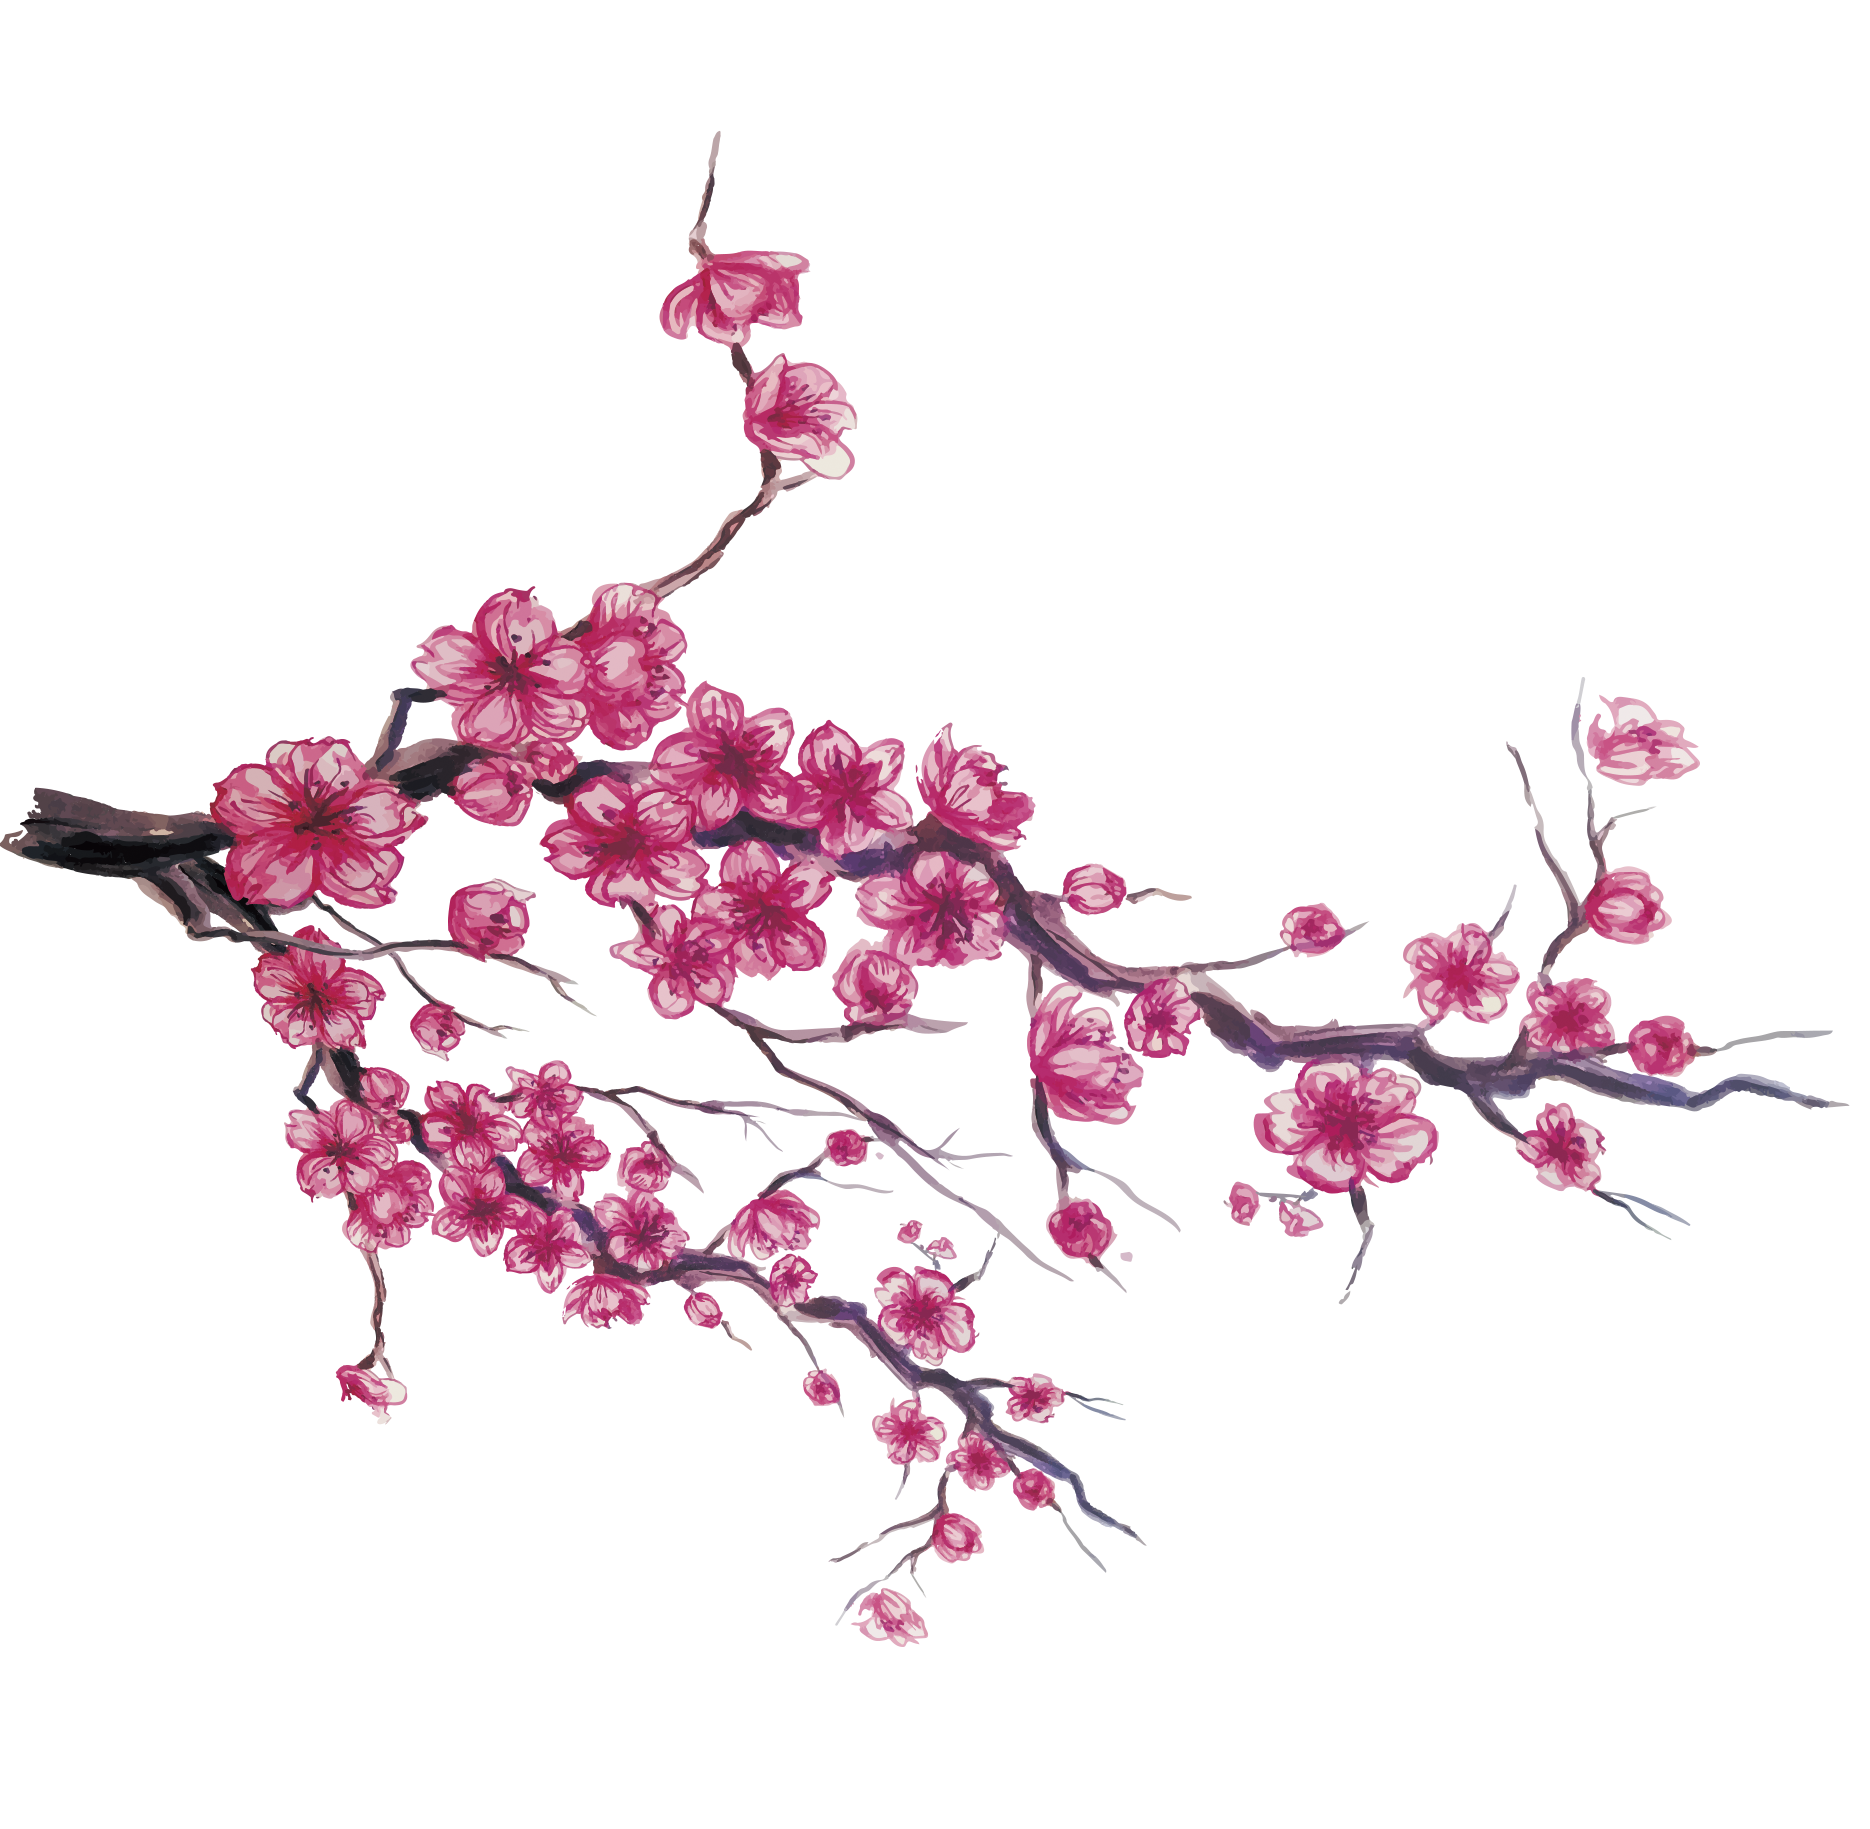 Japan download hand painted. Bud drawing cherry blossom vector stock